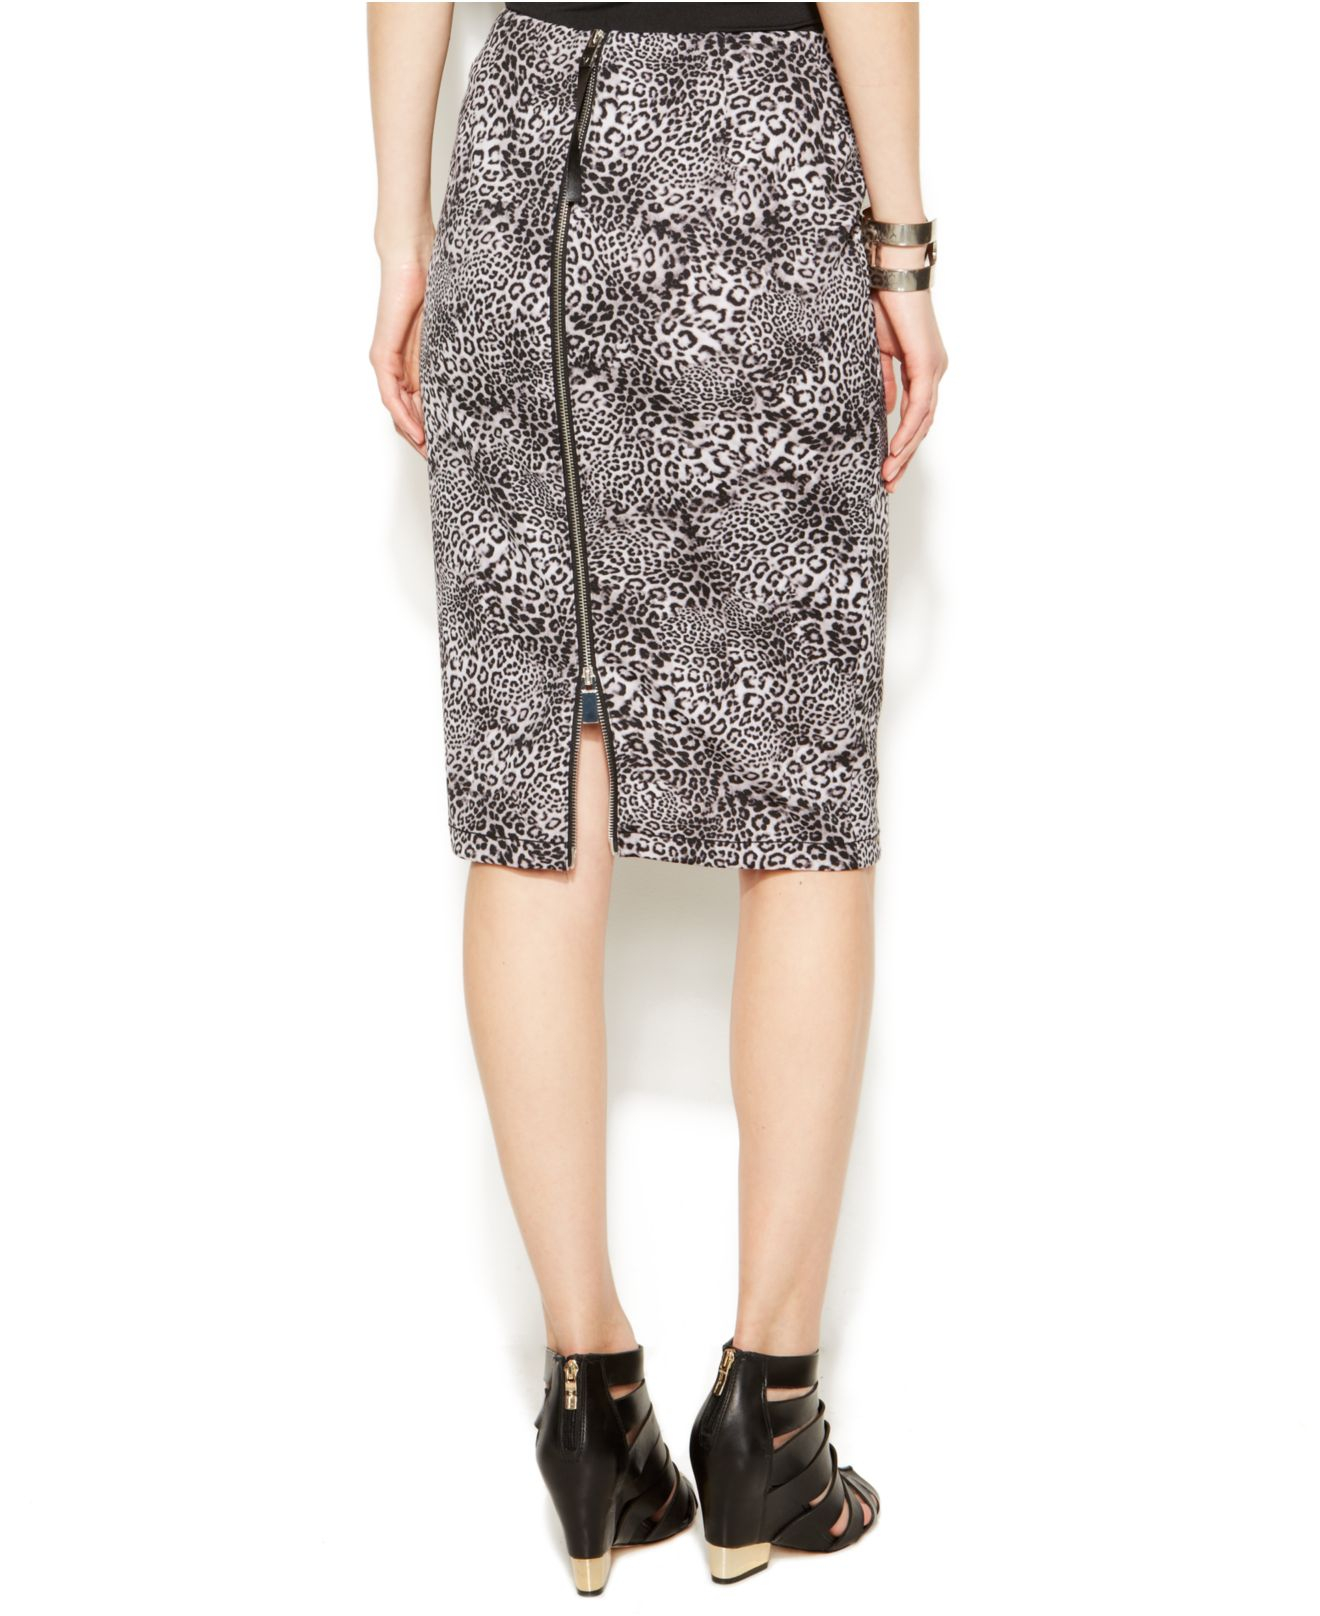 vince camuto leopard print pencil skirt in gray glacier